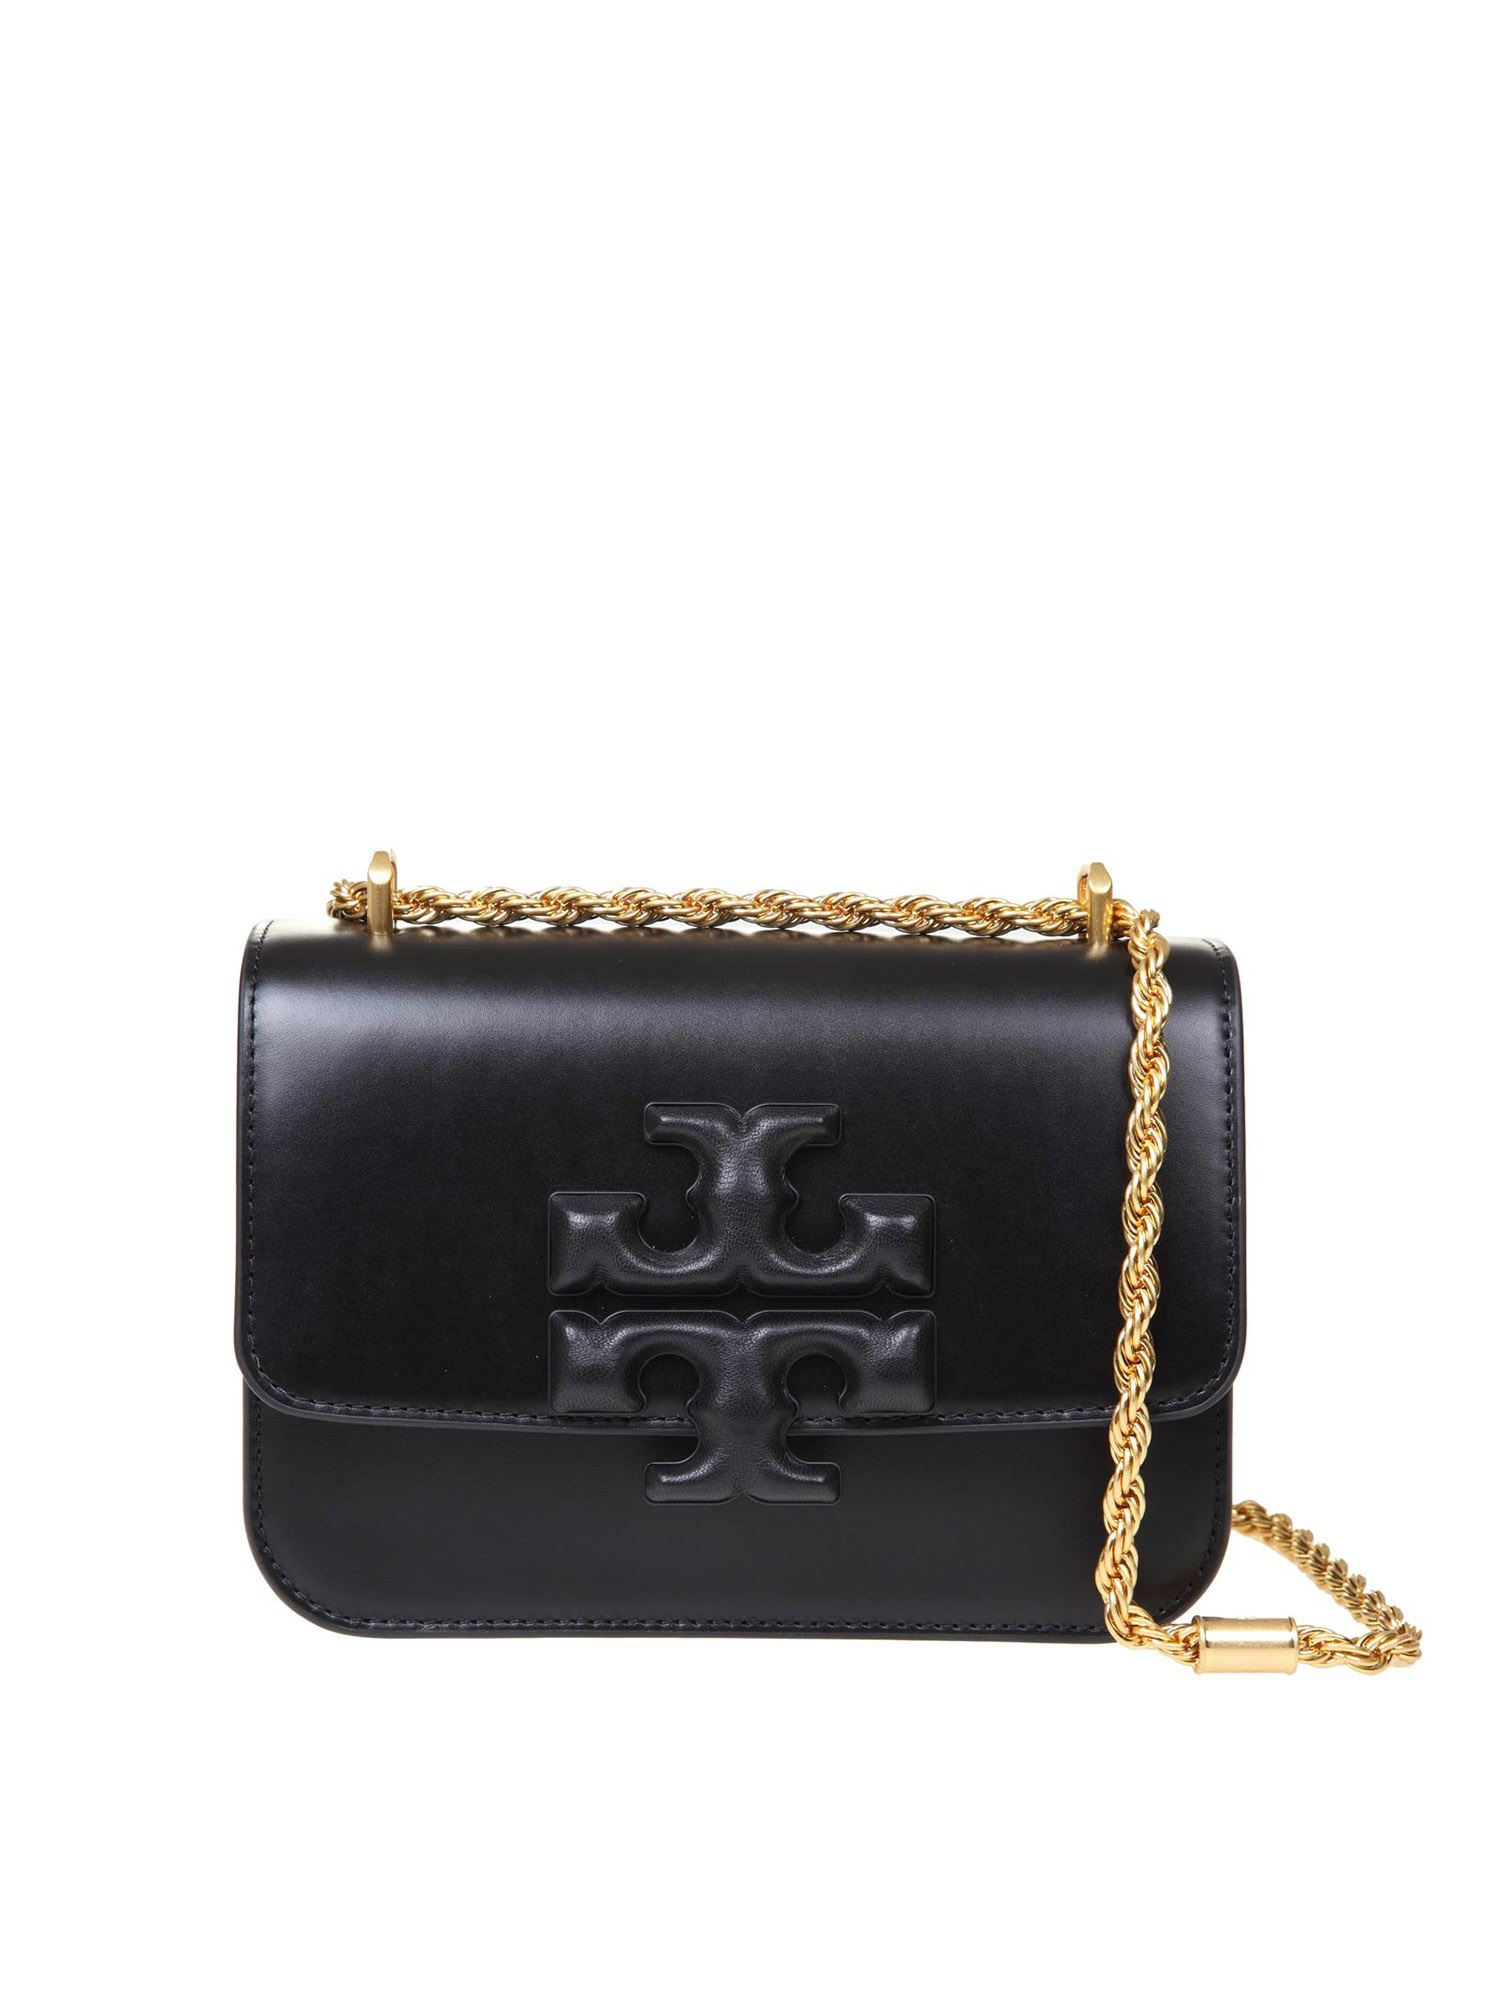 Tory Burch ELEANOR SHOULDER BAG IN BLACK CALFSKIN